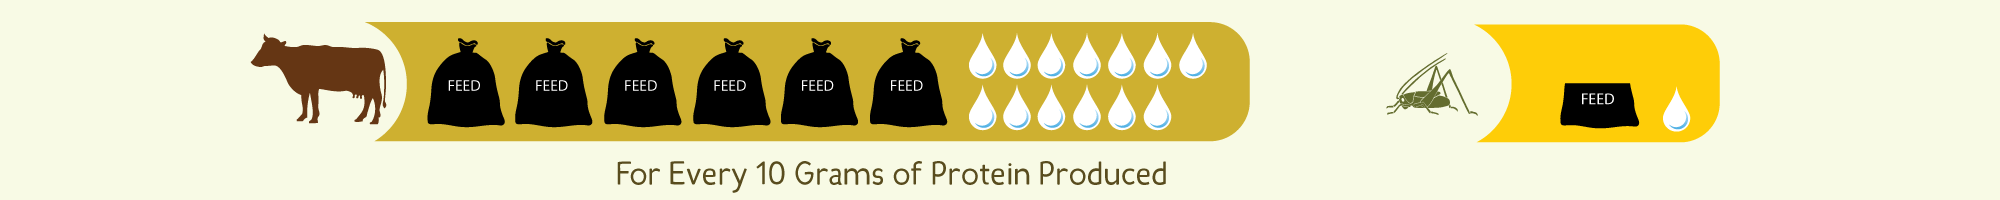 For every 10 grams of protein produced insects utilize substantially less feed and water